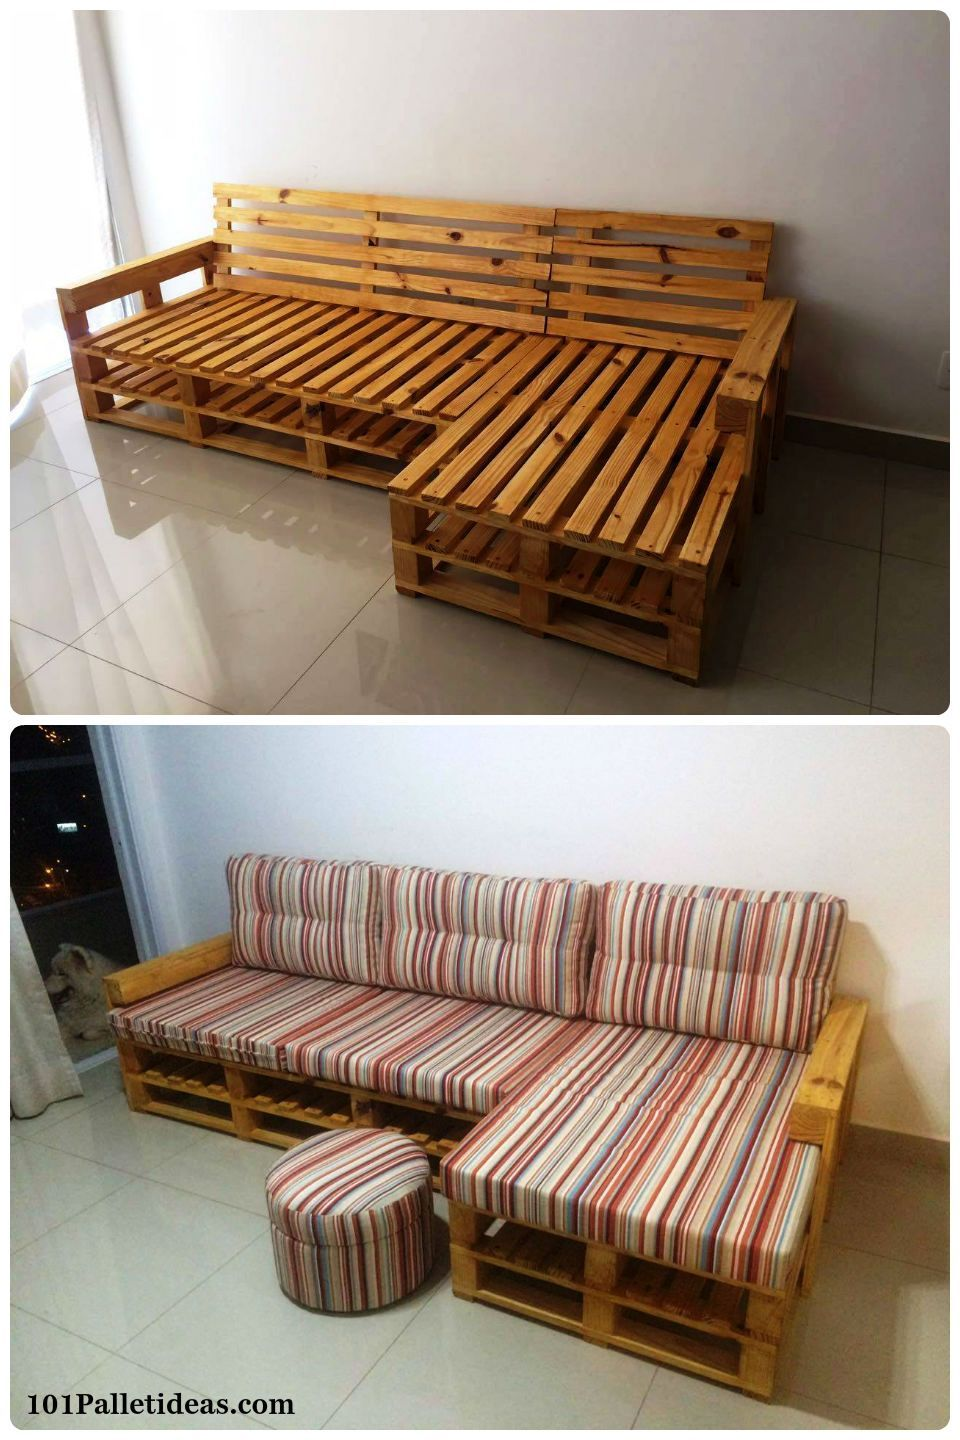 20 pallet ideas you can diy for your home pallet ideas for Pallet ideas